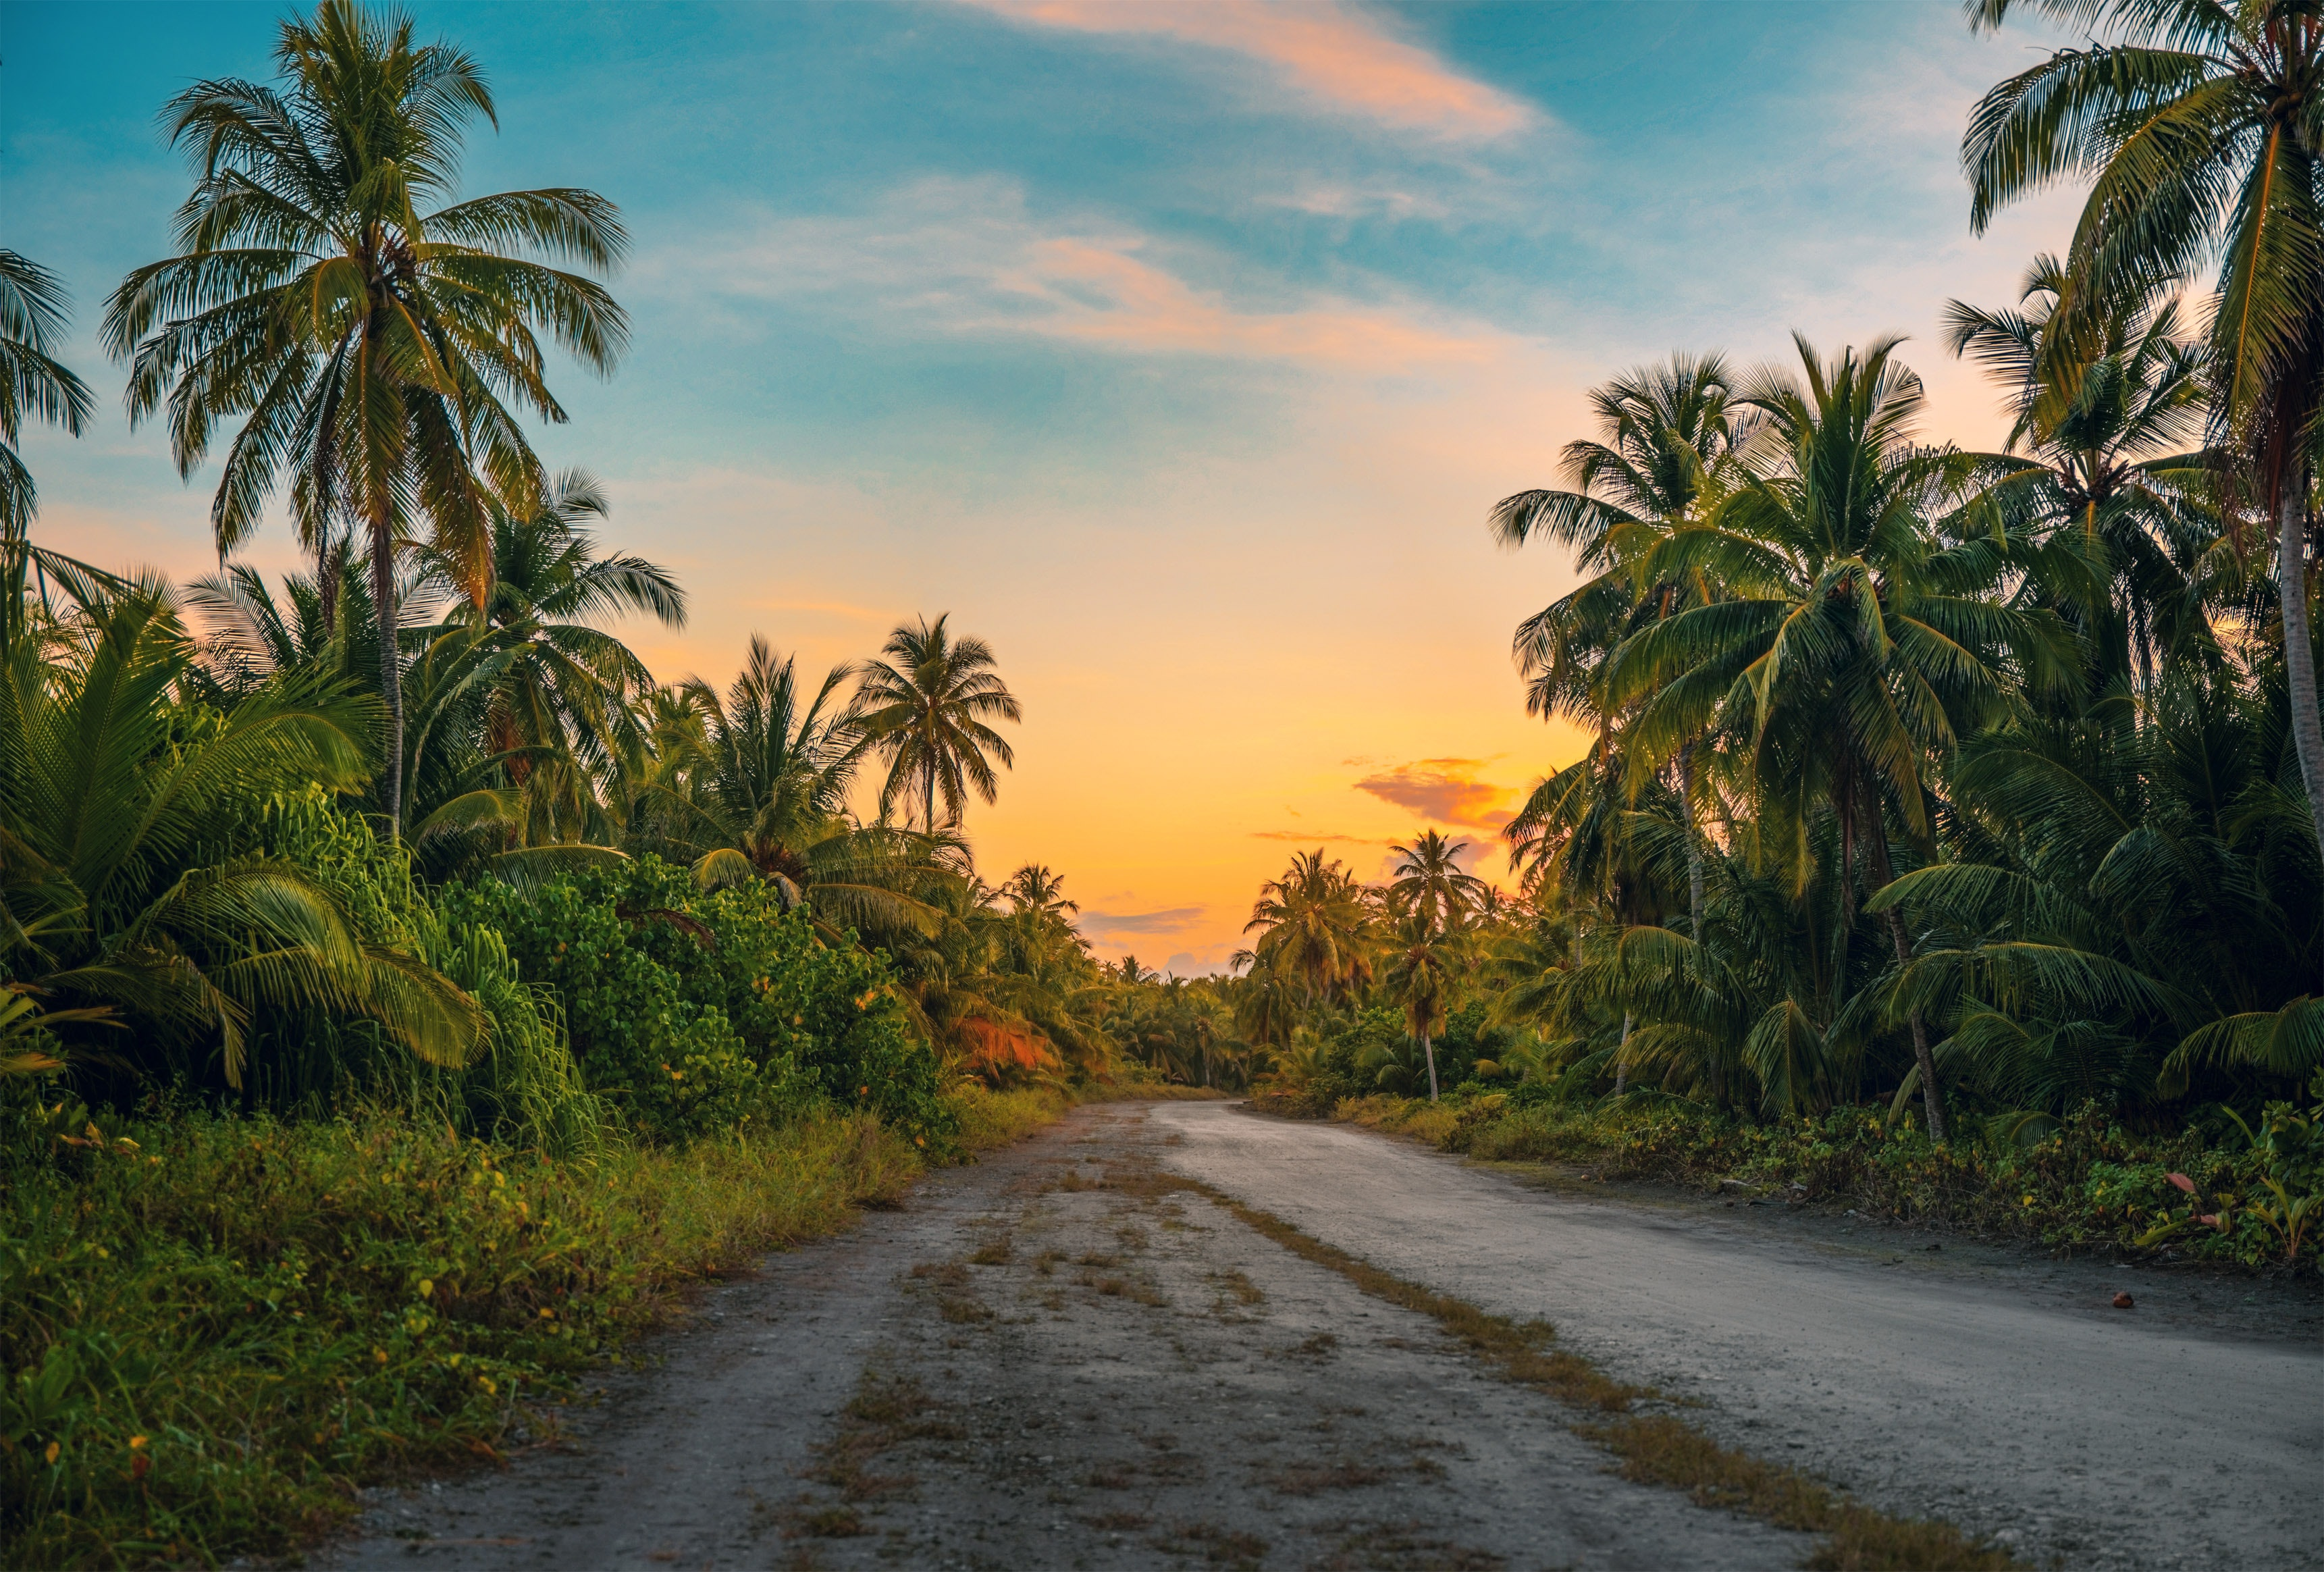 coconut-trees-dawn-daylight-1033729